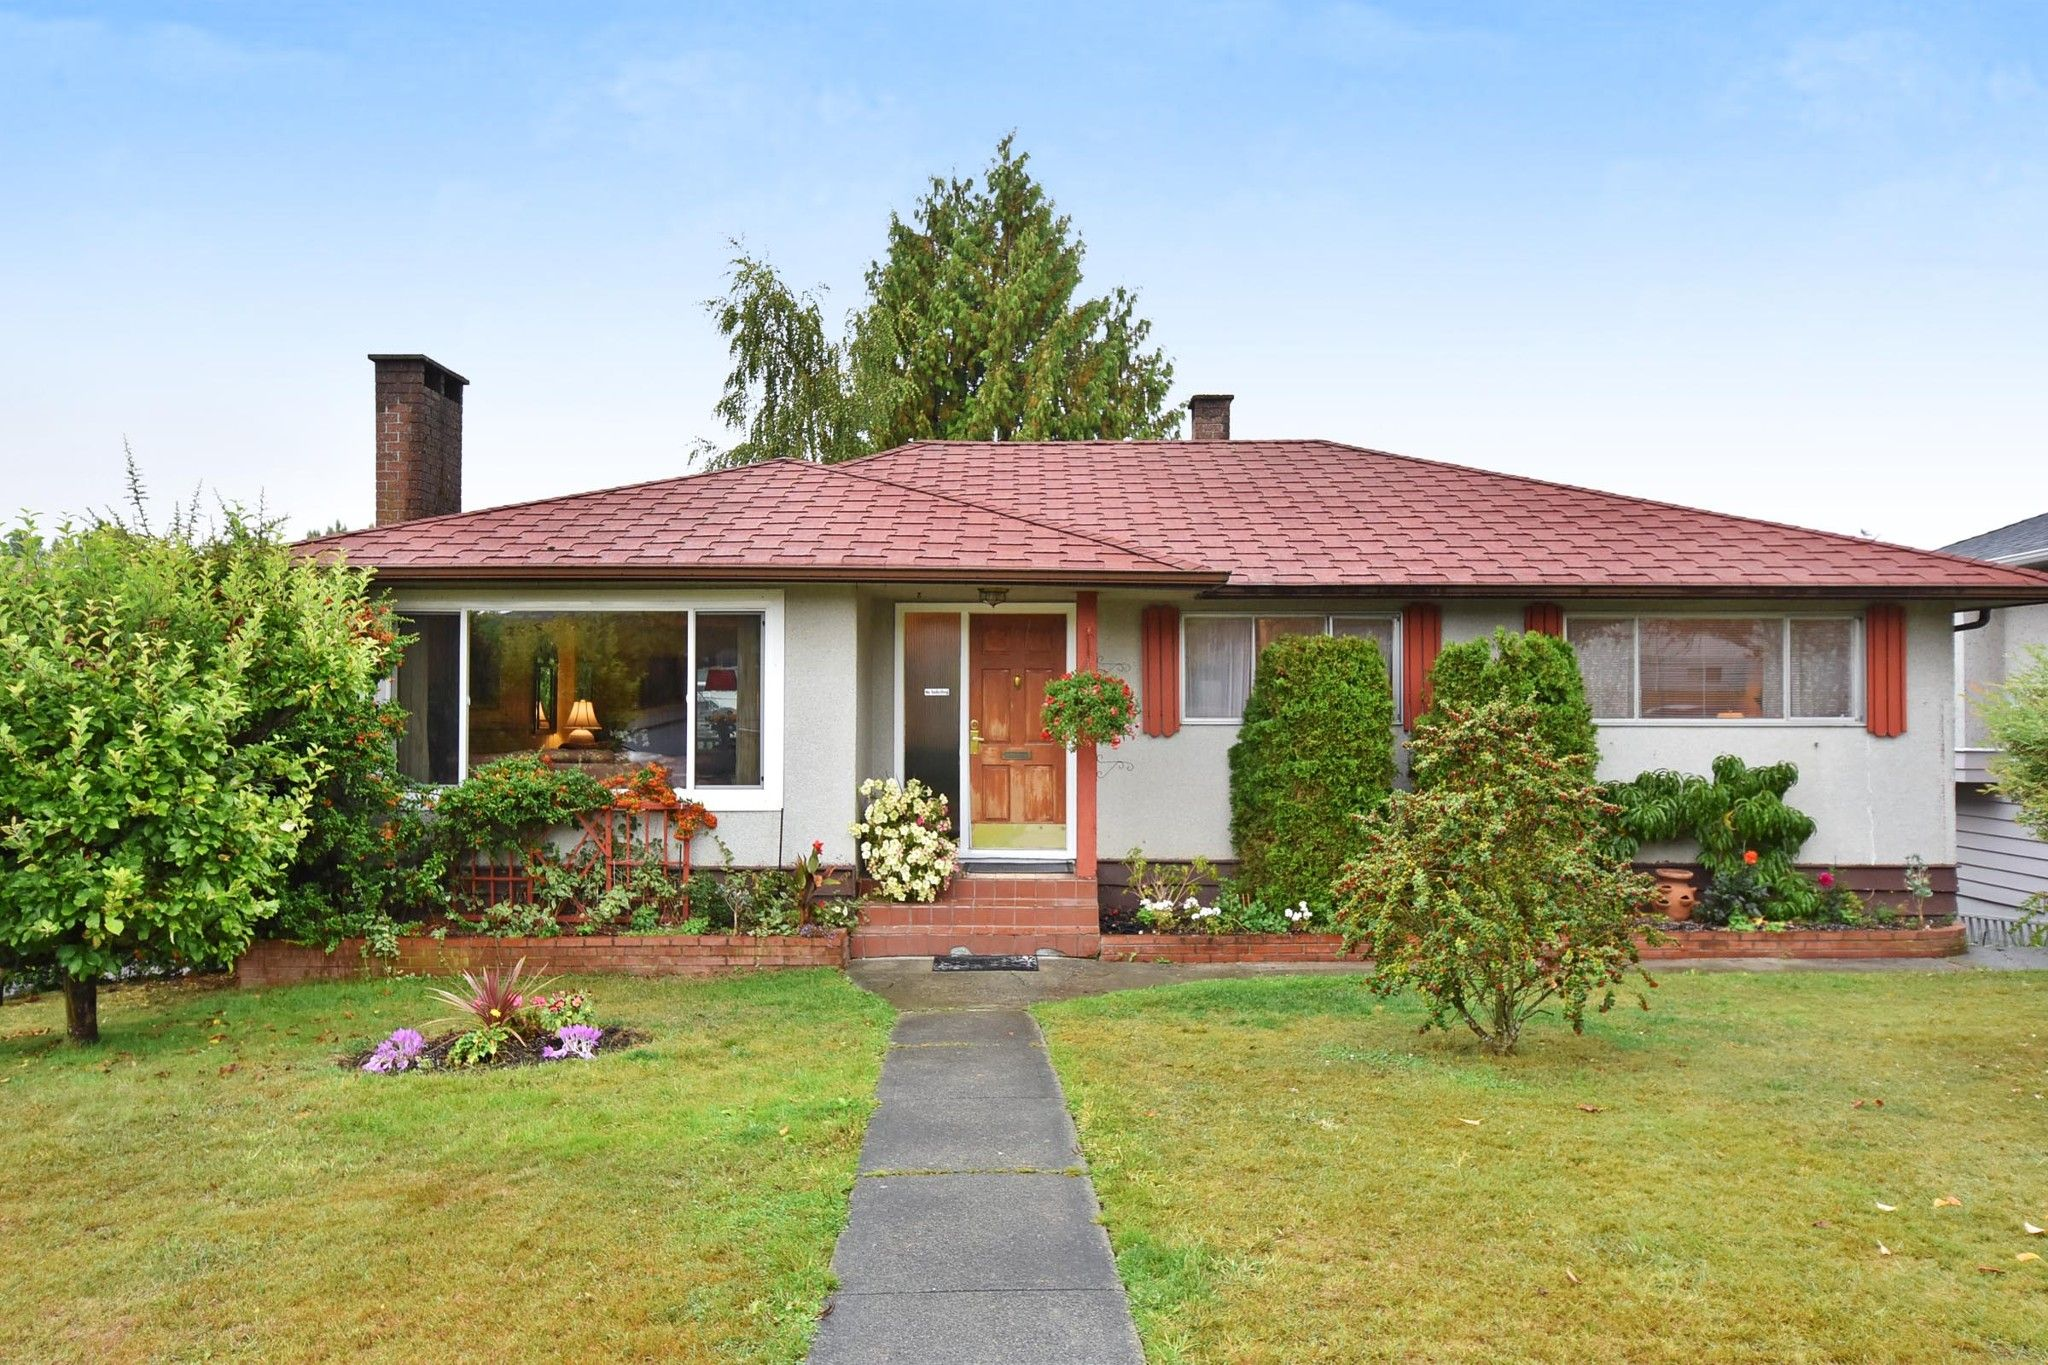 """Main Photo: 4785 FAIRLAWN Drive in Burnaby: Brentwood Park House for sale in """"Brentwood Park"""" (Burnaby North)  : MLS®# R2305657"""